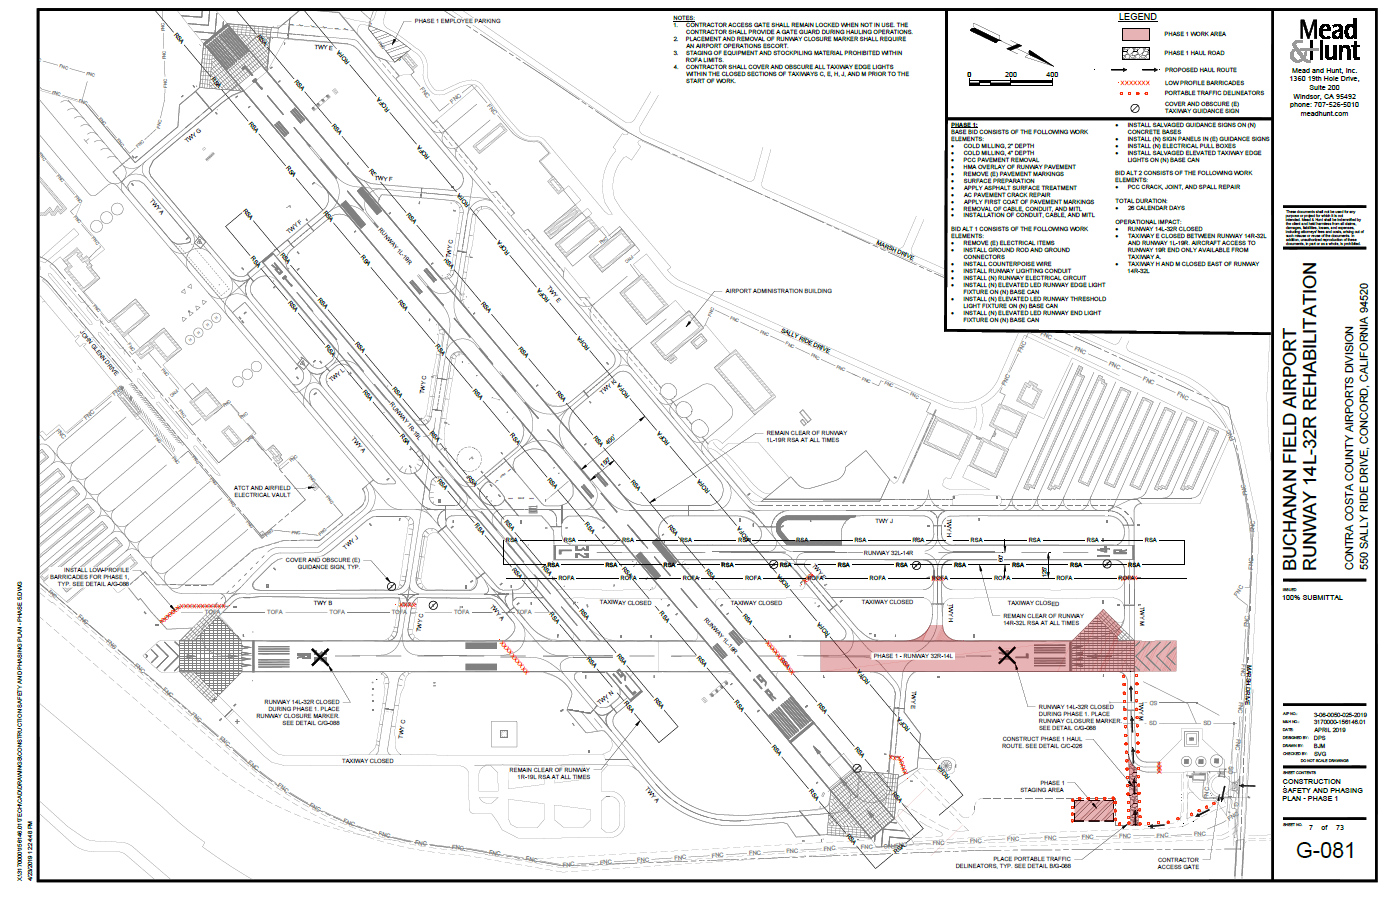 Runway 14L-32R Rehabilitation Project Phase 1